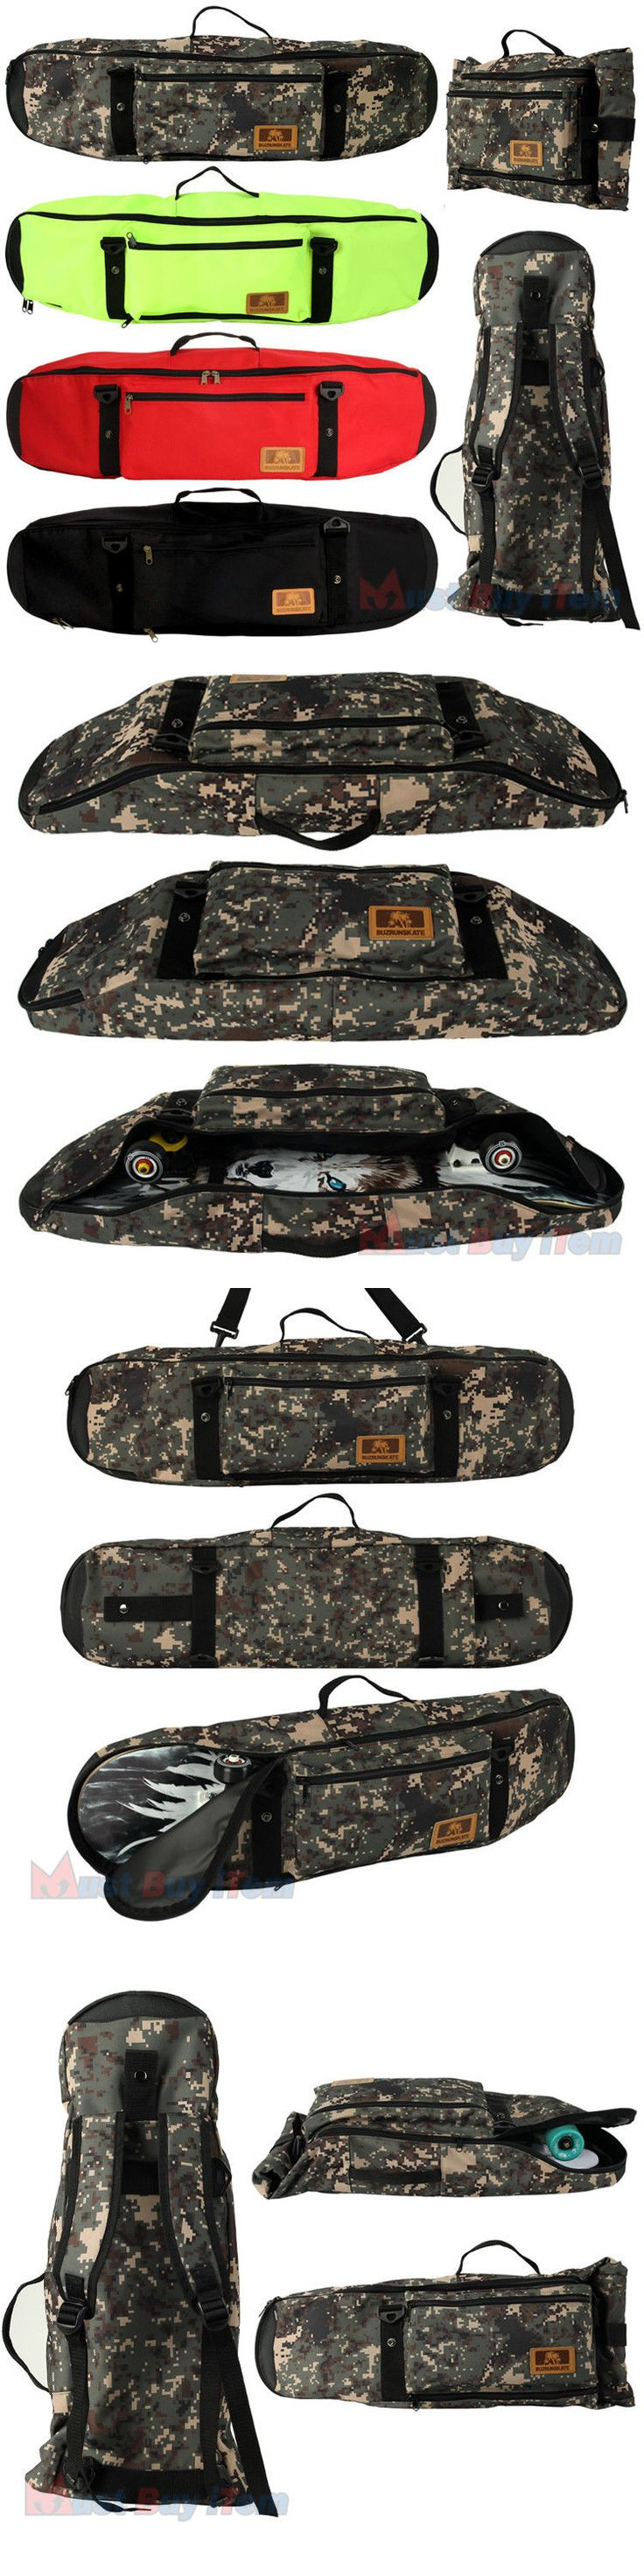 Other Skateboarding Clothing 159079: Skateboard Backpack Skate Retro Cruiser Fish Board Storage Carry Case Sport Bags -> BUY IT NOW ONLY: $79.98 on eBay!